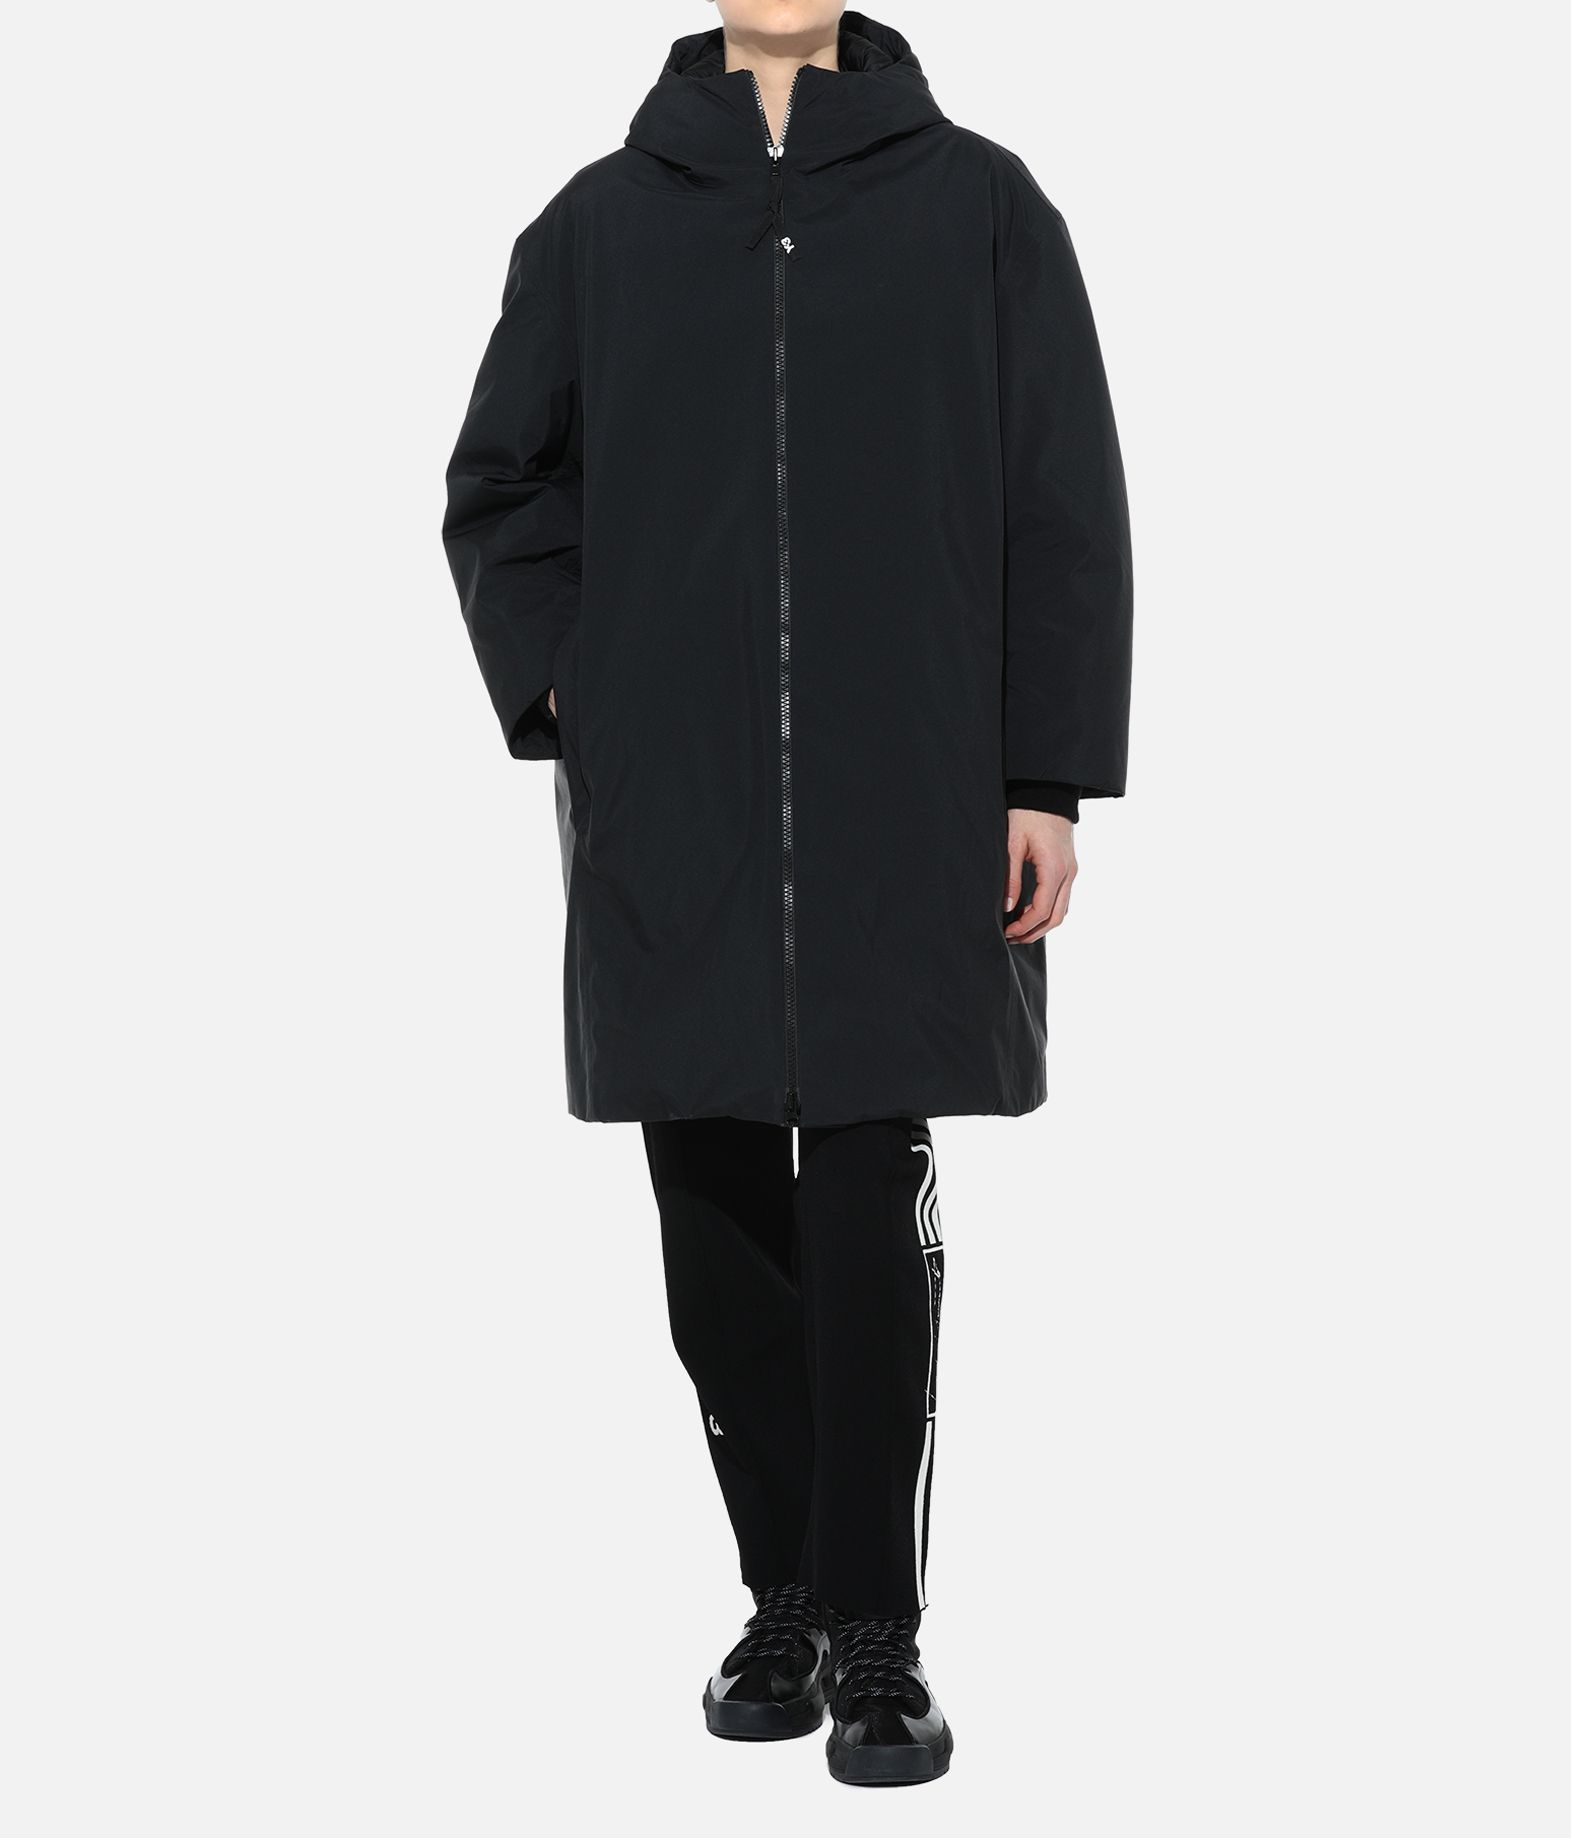 Y-3 Y-3 GORE-TEX Down Parka Jacket Woman a